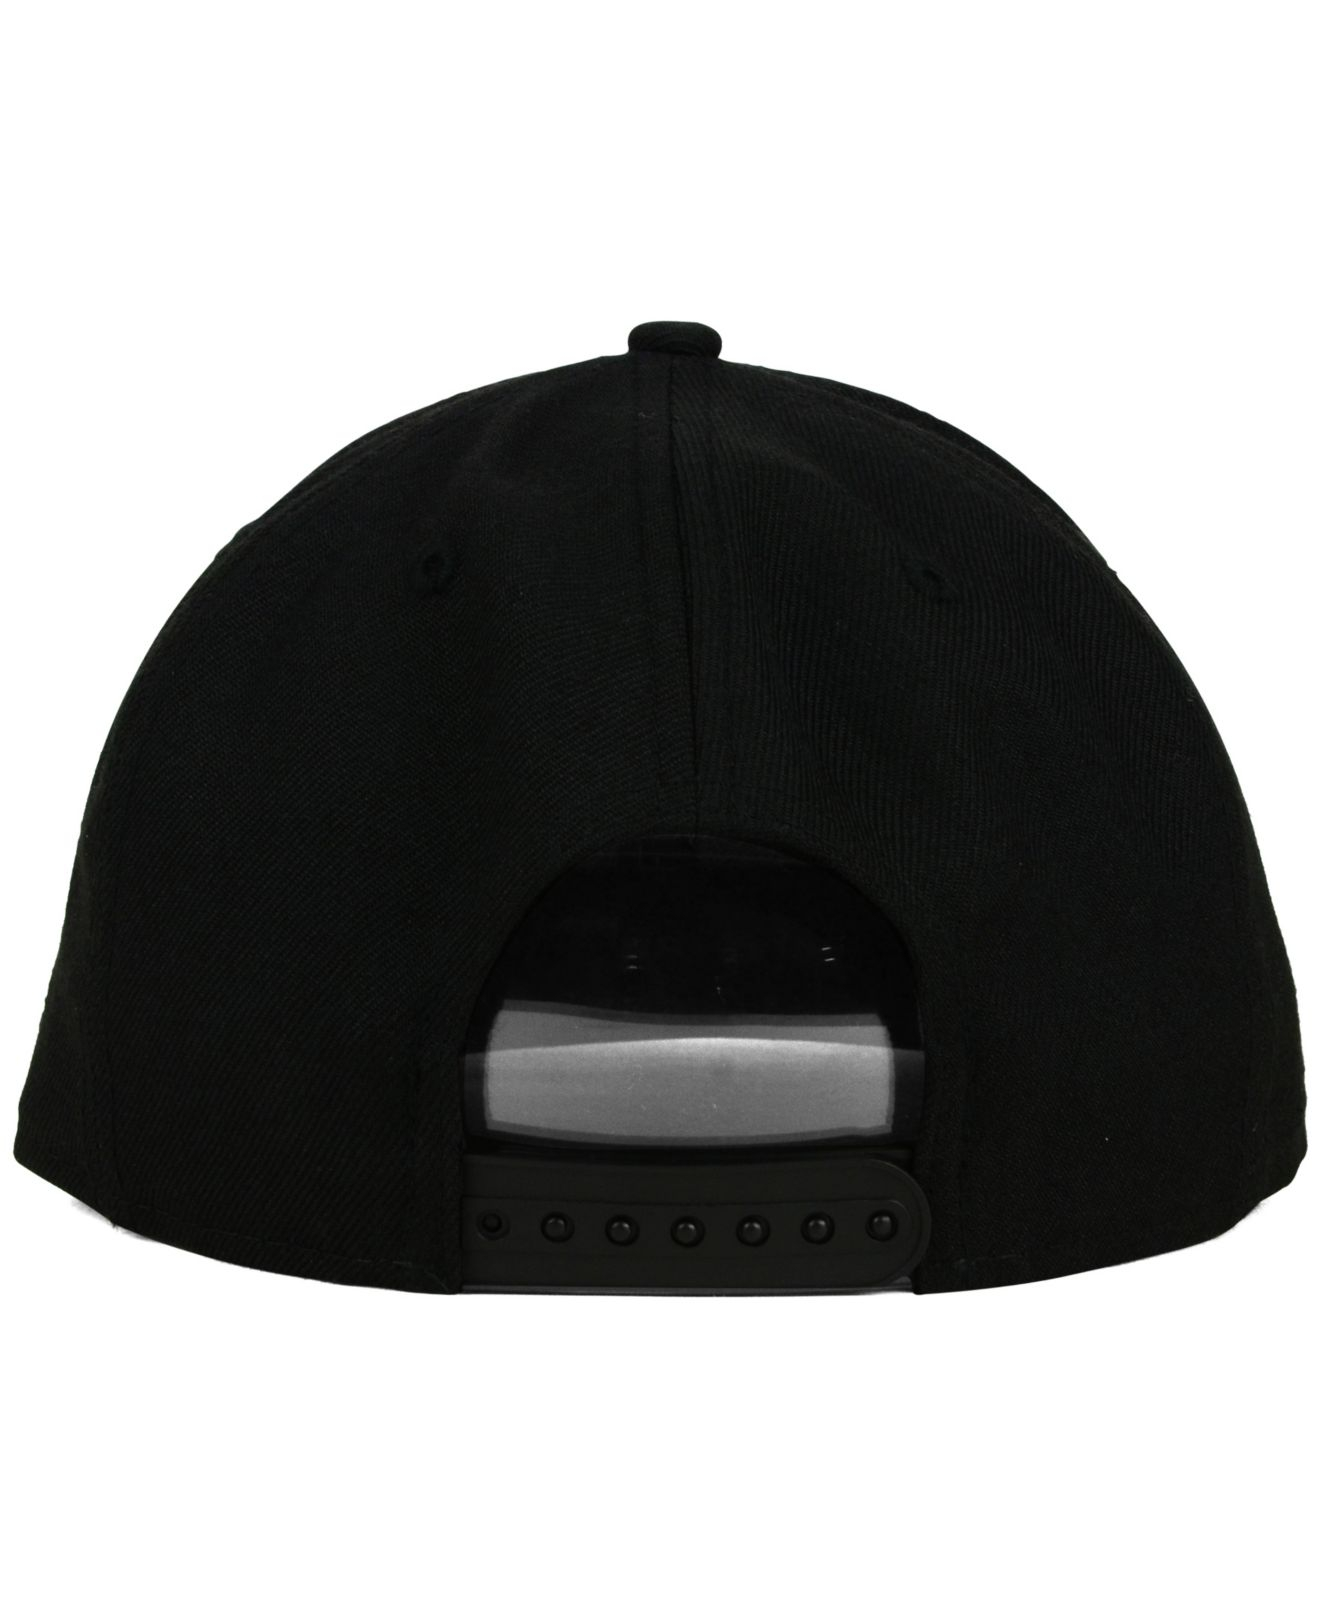 detailed look 091cb b2f68 Lyst - KTZ New Orleans Saints Black On Black 9fifty Snapback Cap in ...